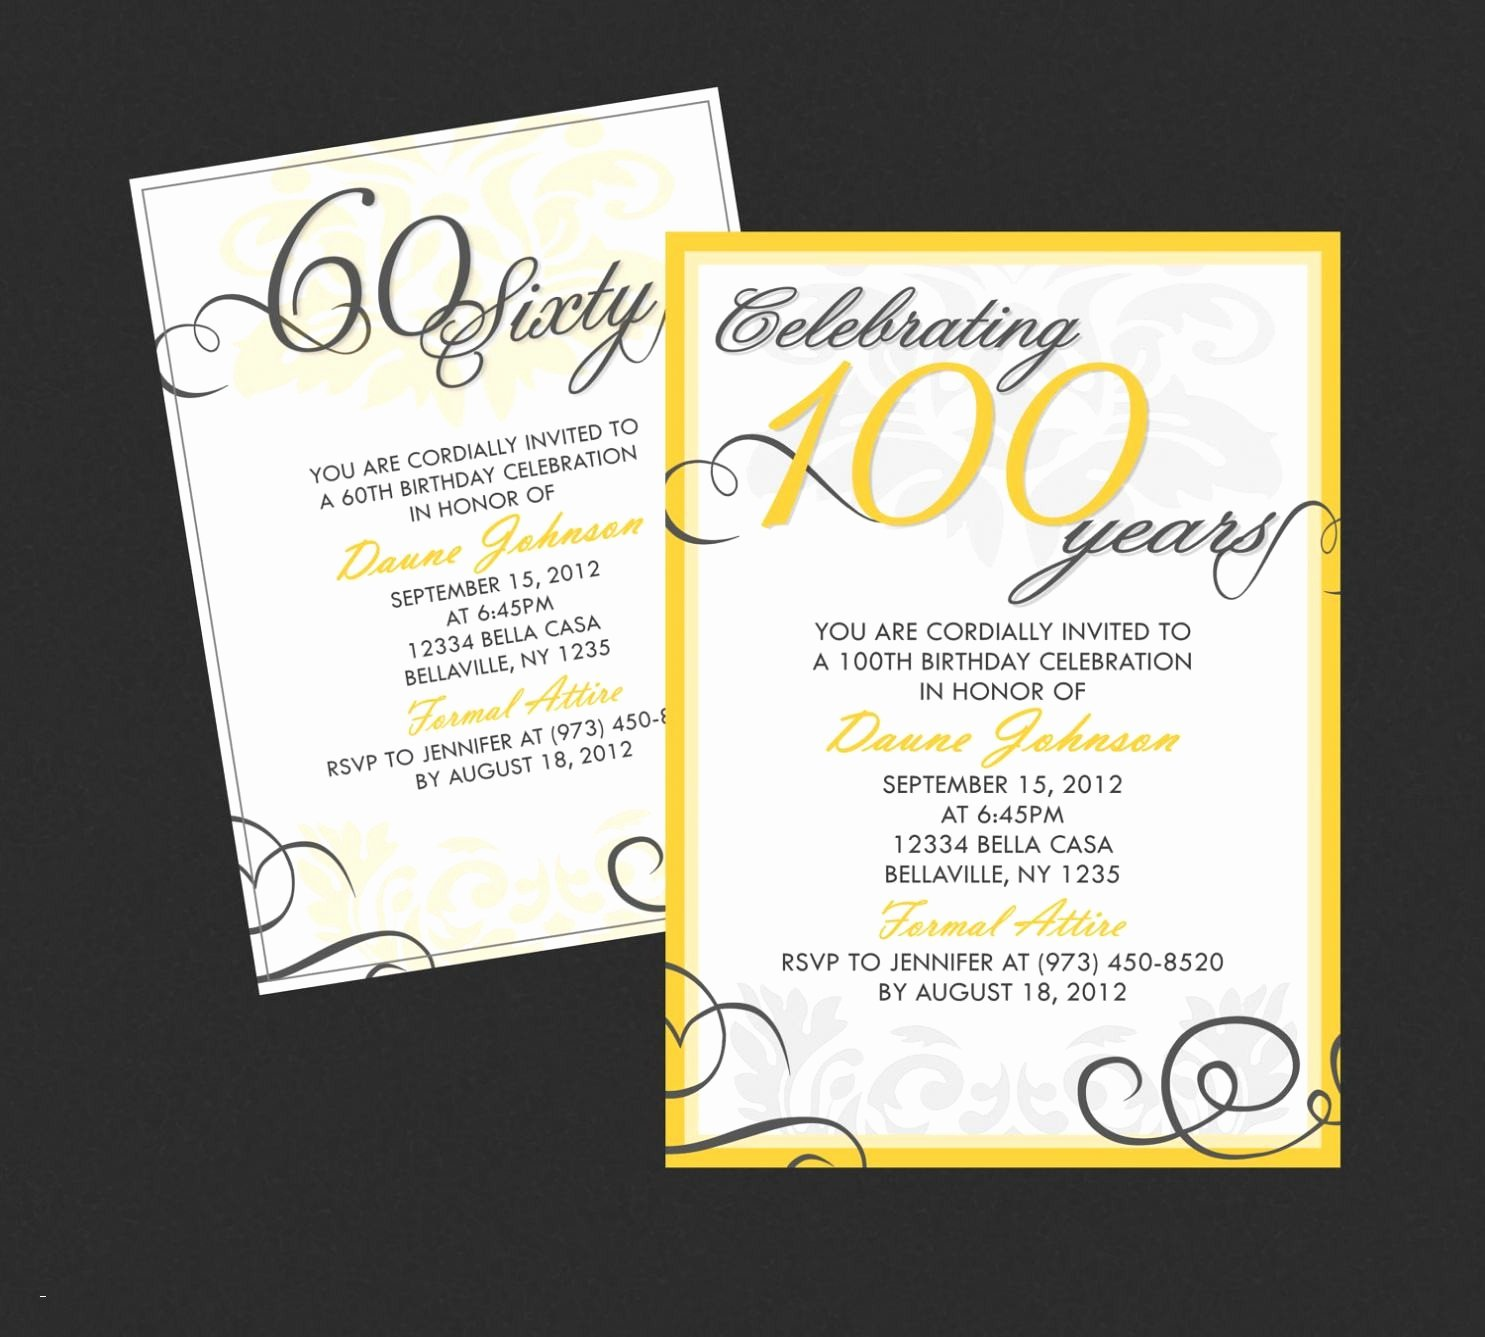 Surprise Party Invitation Template Best Of Surprise 60th Birthday Invitation Templates Free Fresh